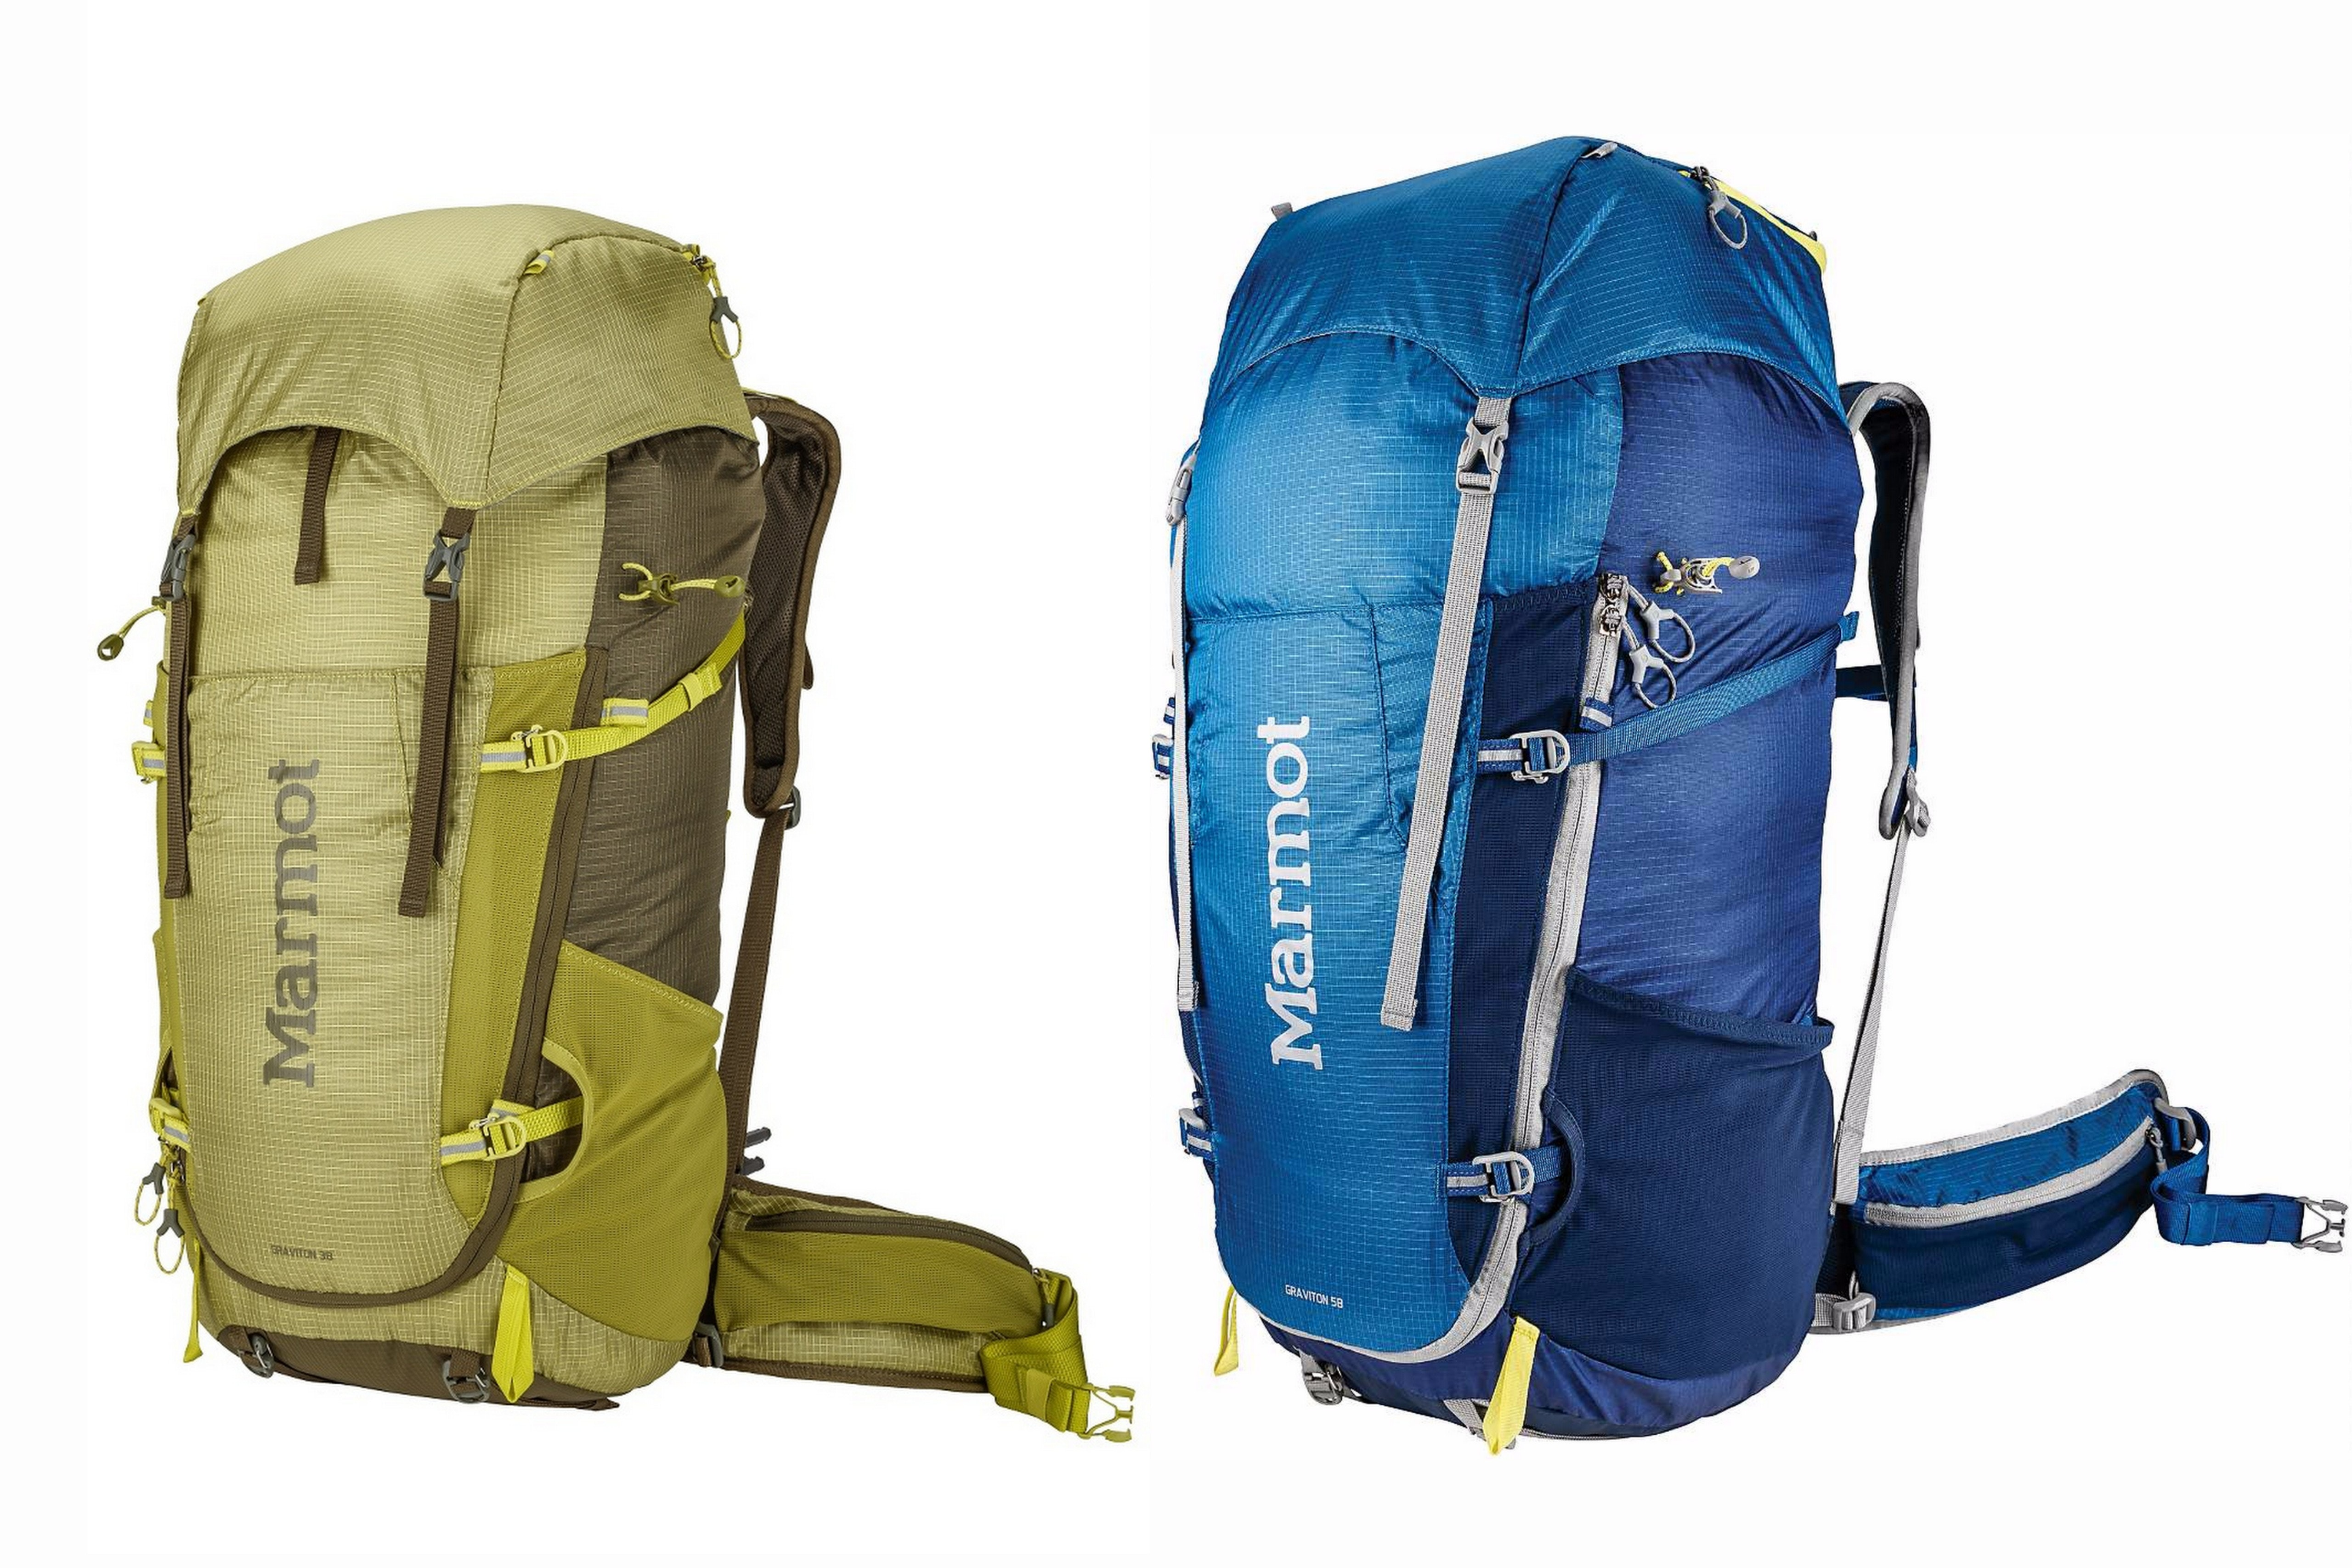 Marmot Graviton 38 and 58L Backpacks